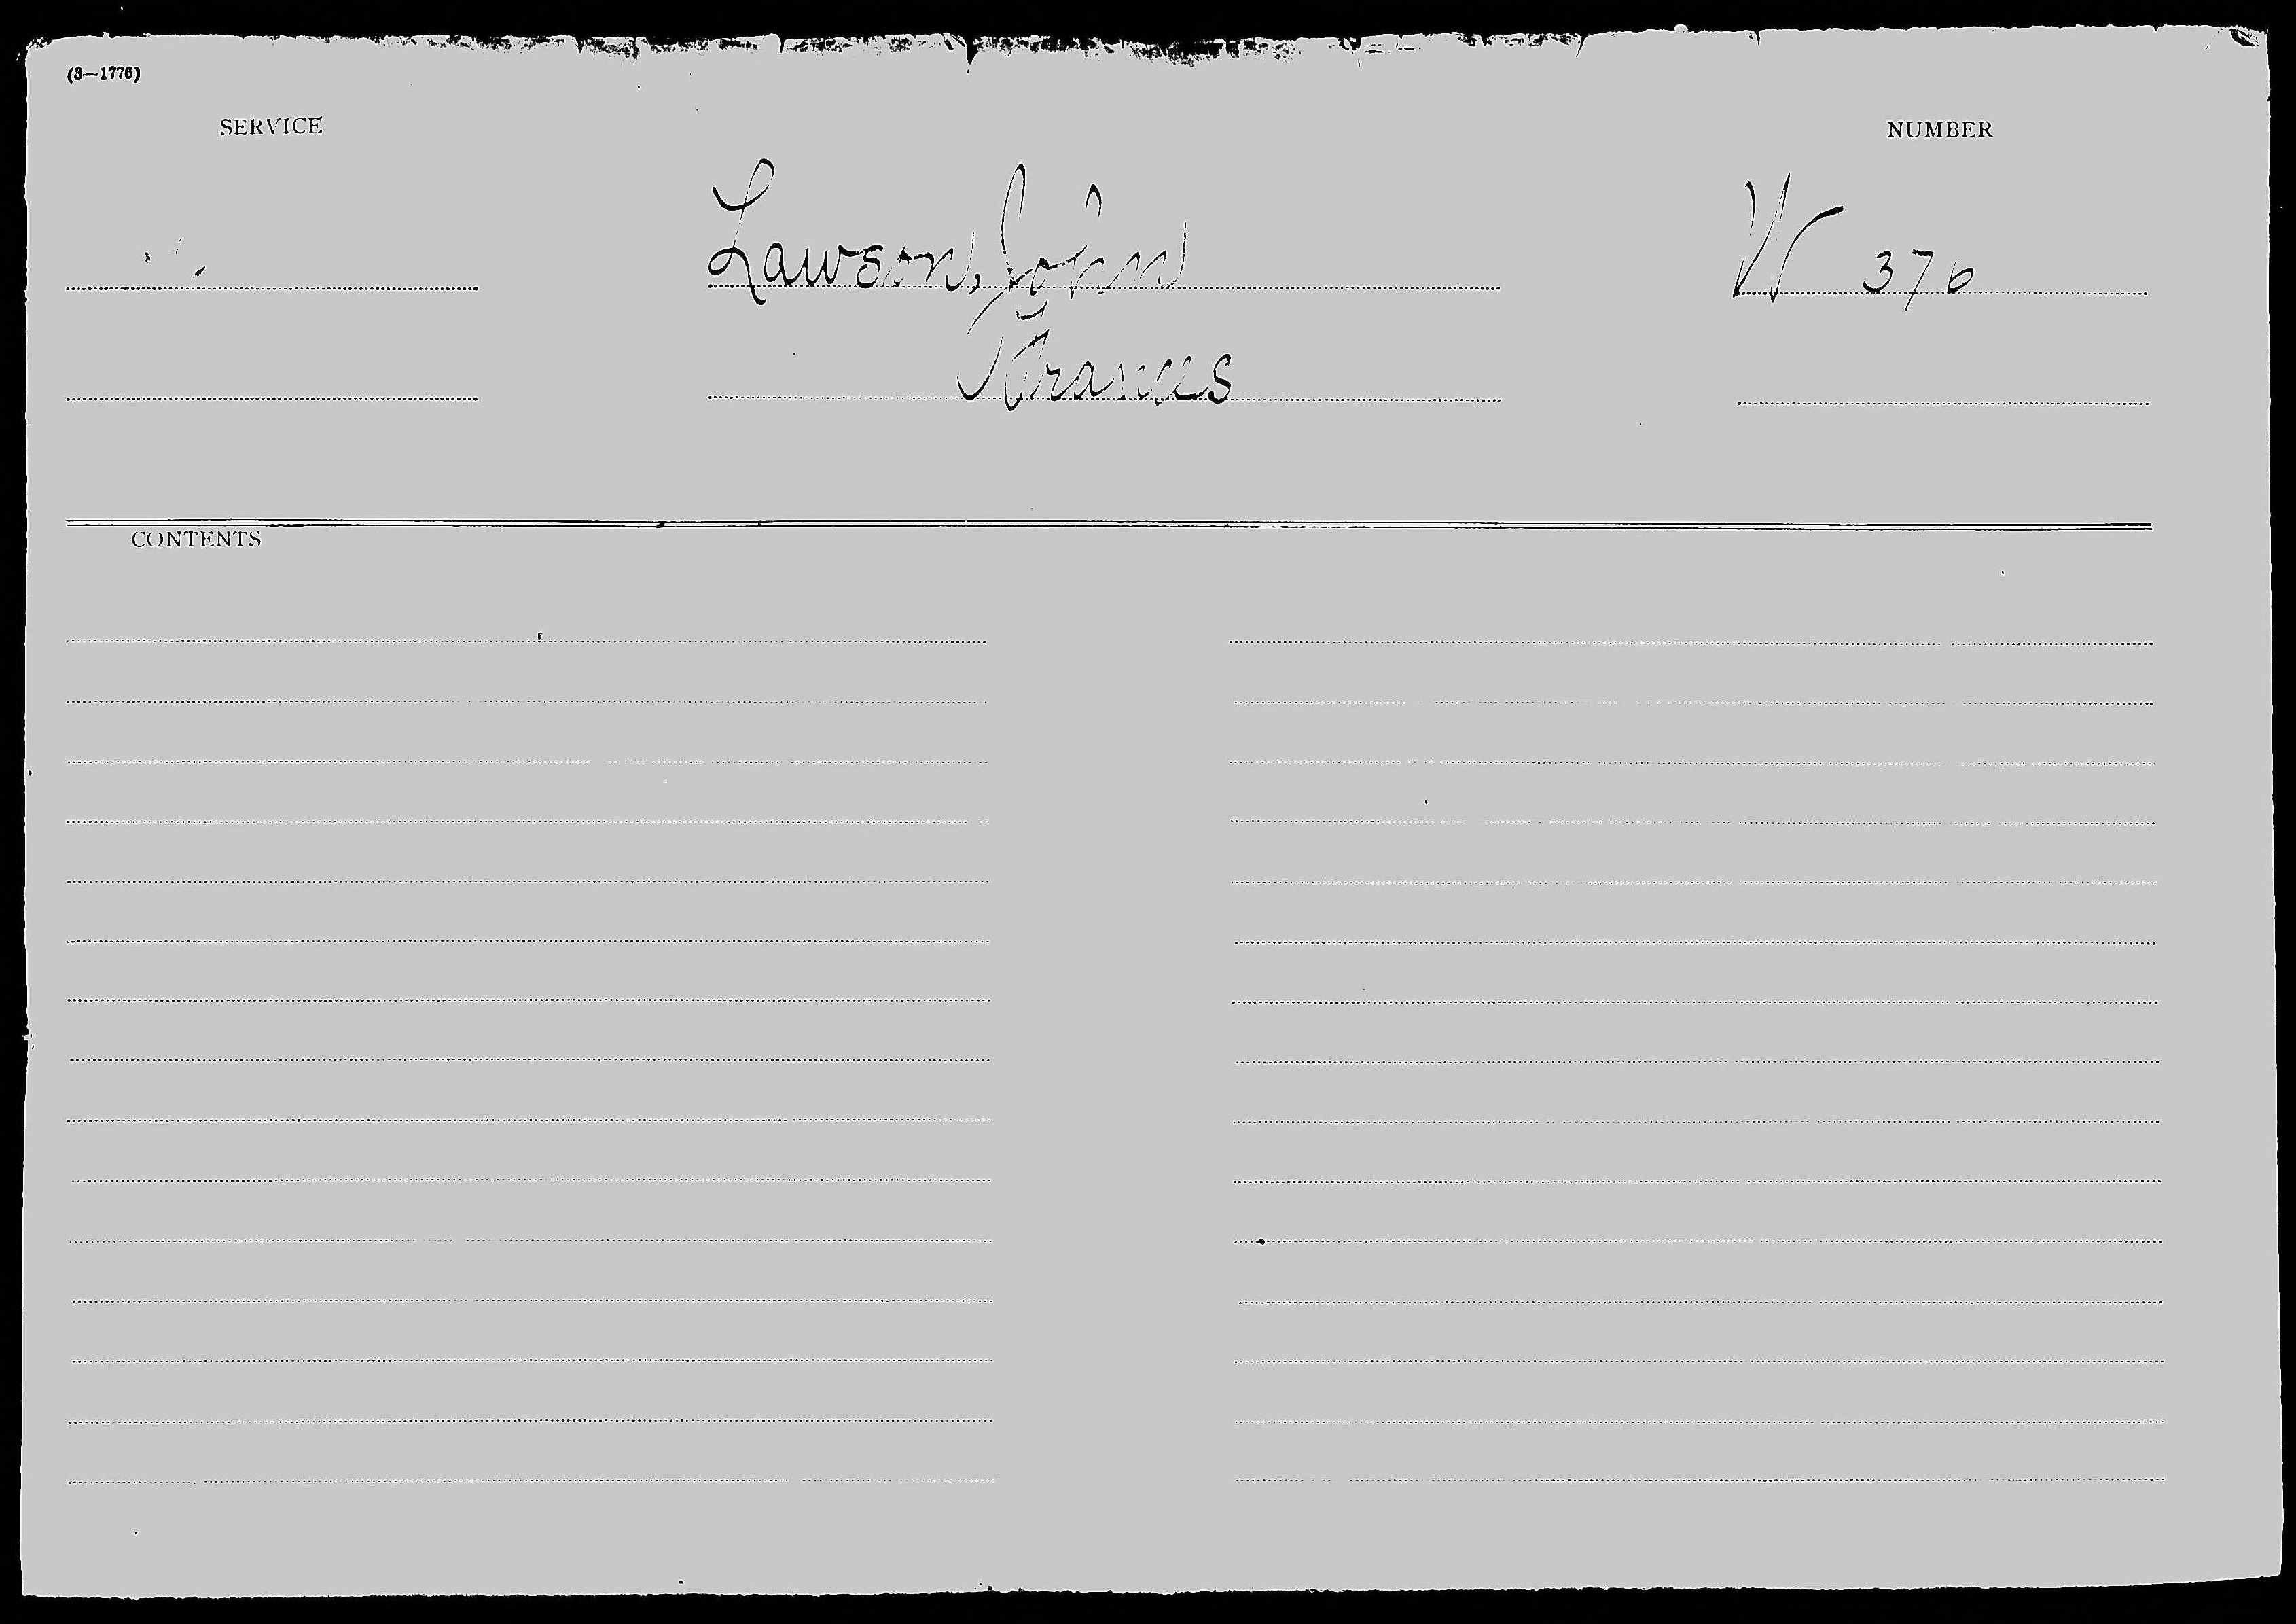 Revolutionary War Pension and Bounty Land Warrant Application File W. 370, for John Lawson